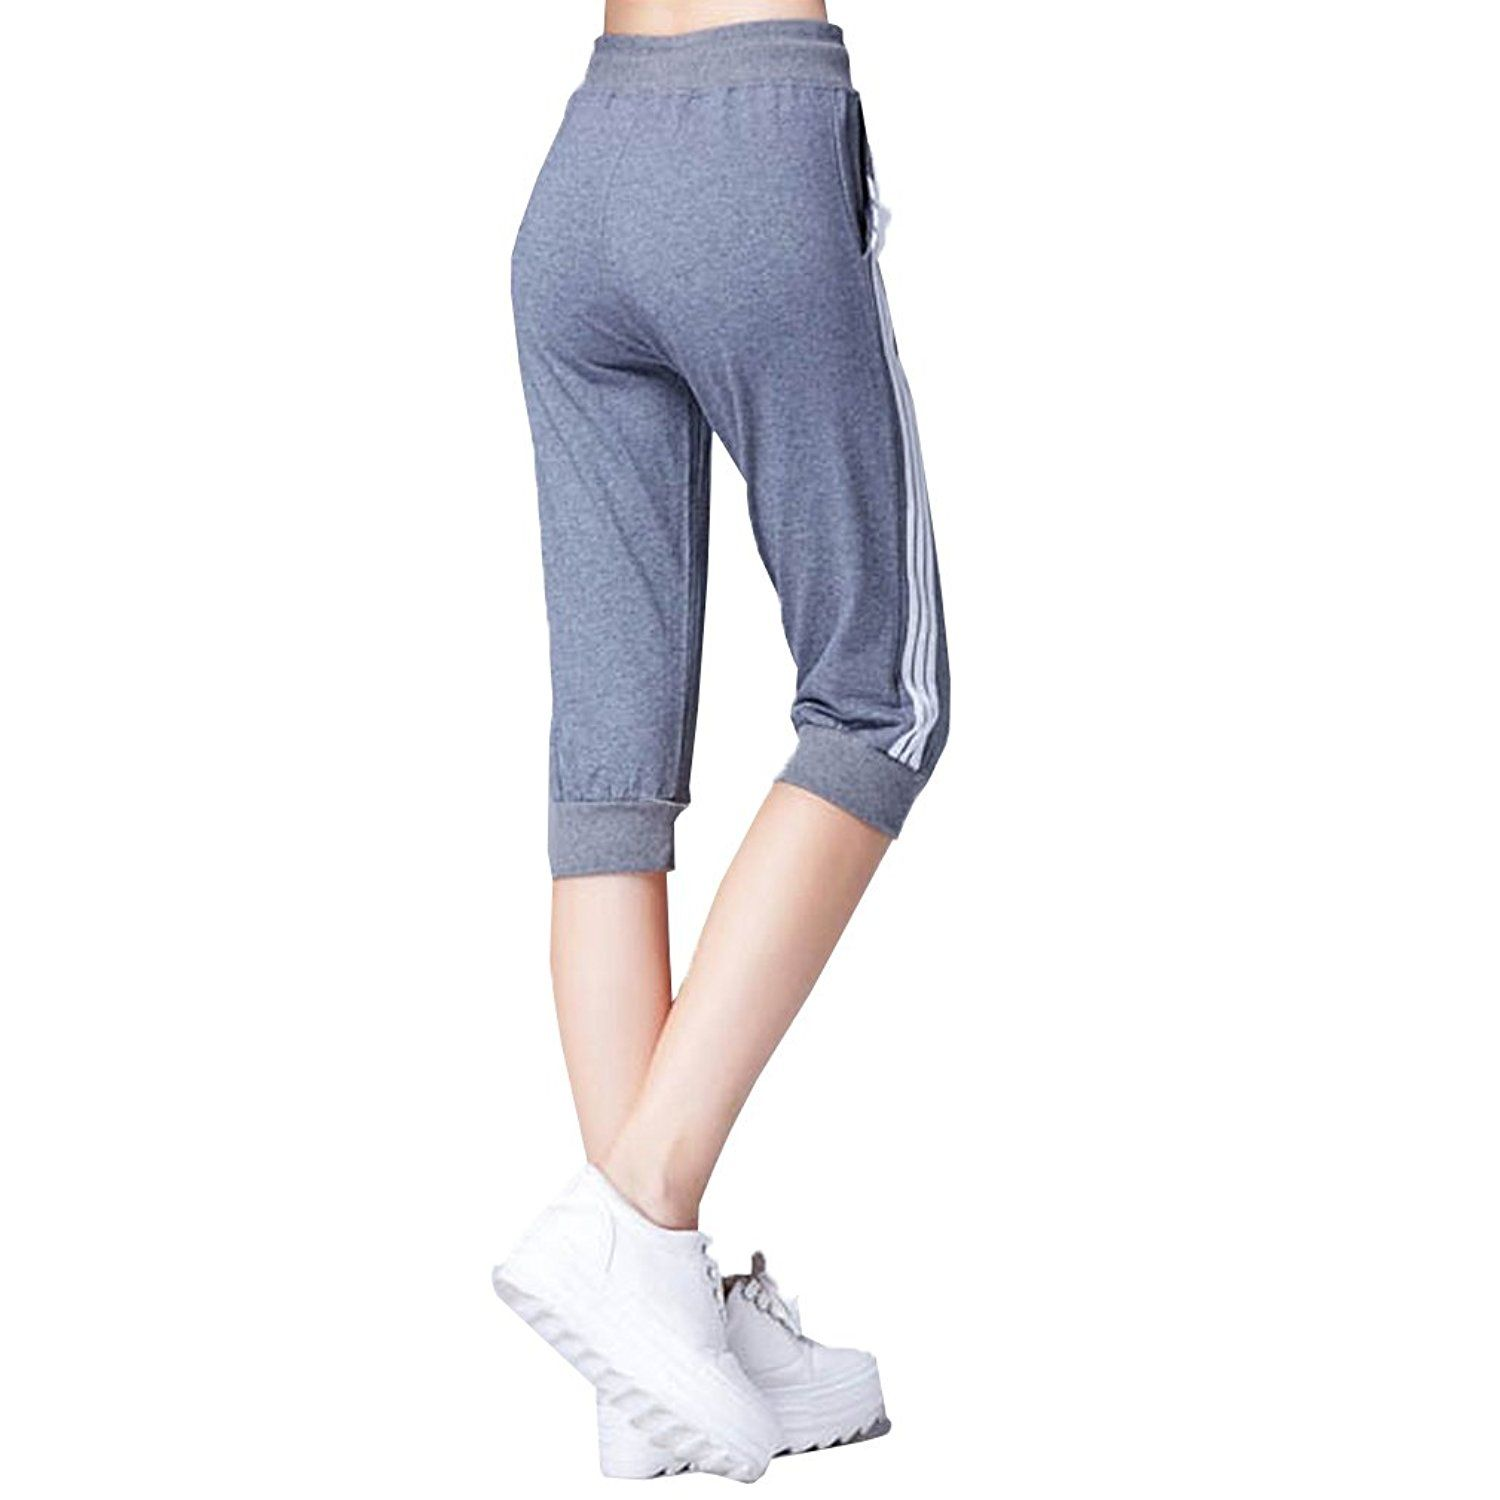 Types of Workout Joggers Great for Every Kind of Fitness Activity